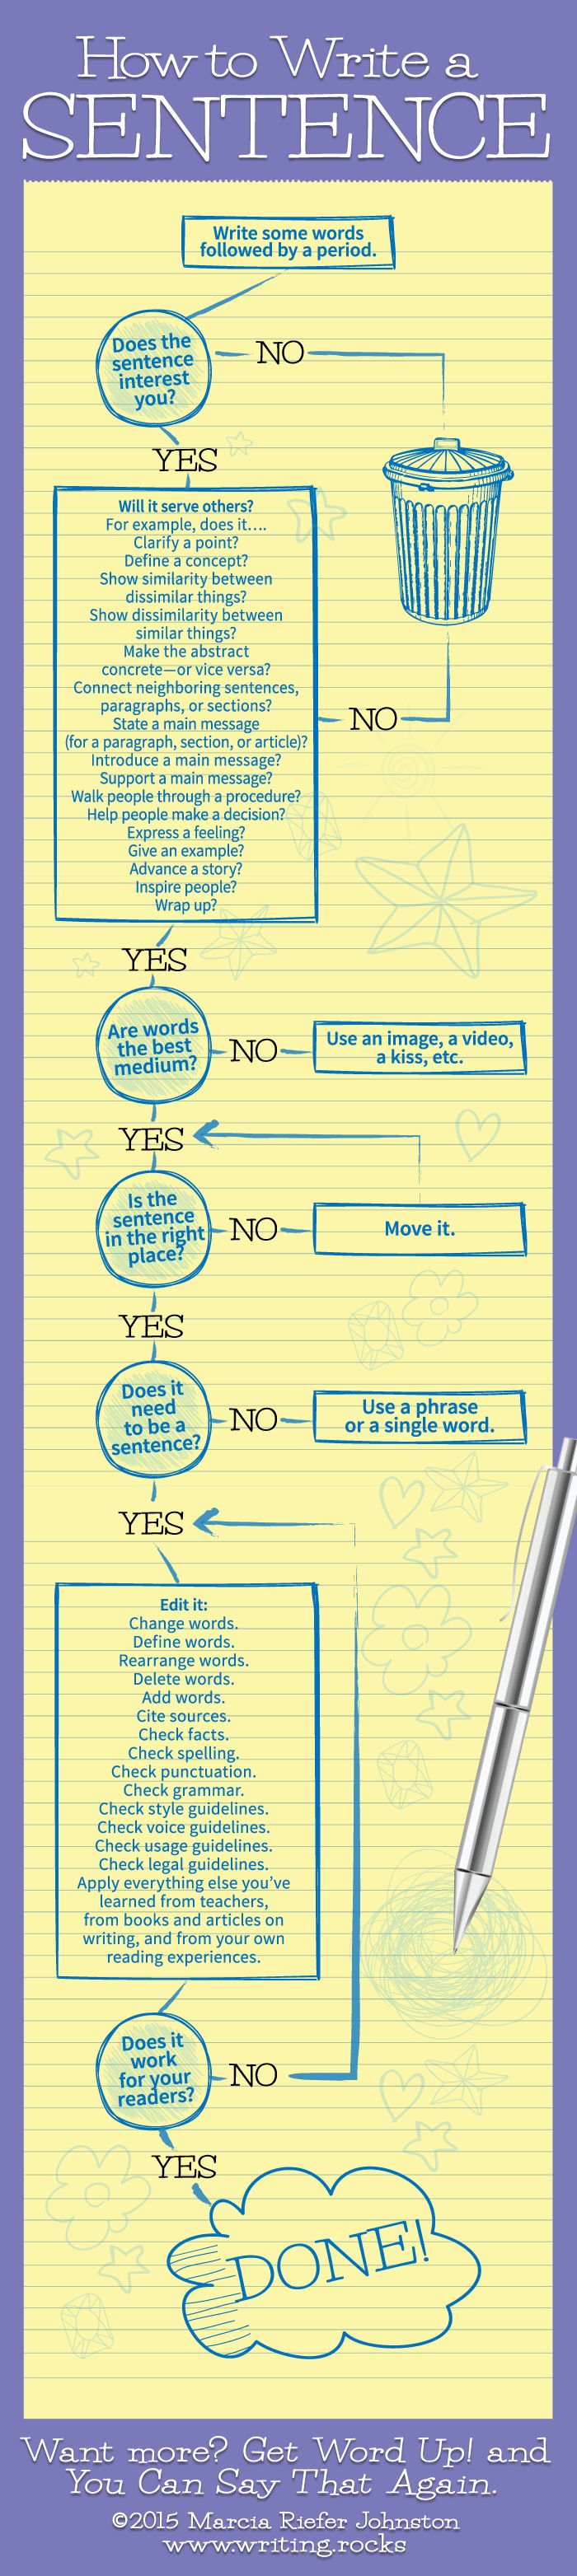 How To Write A Sentence [infographic]